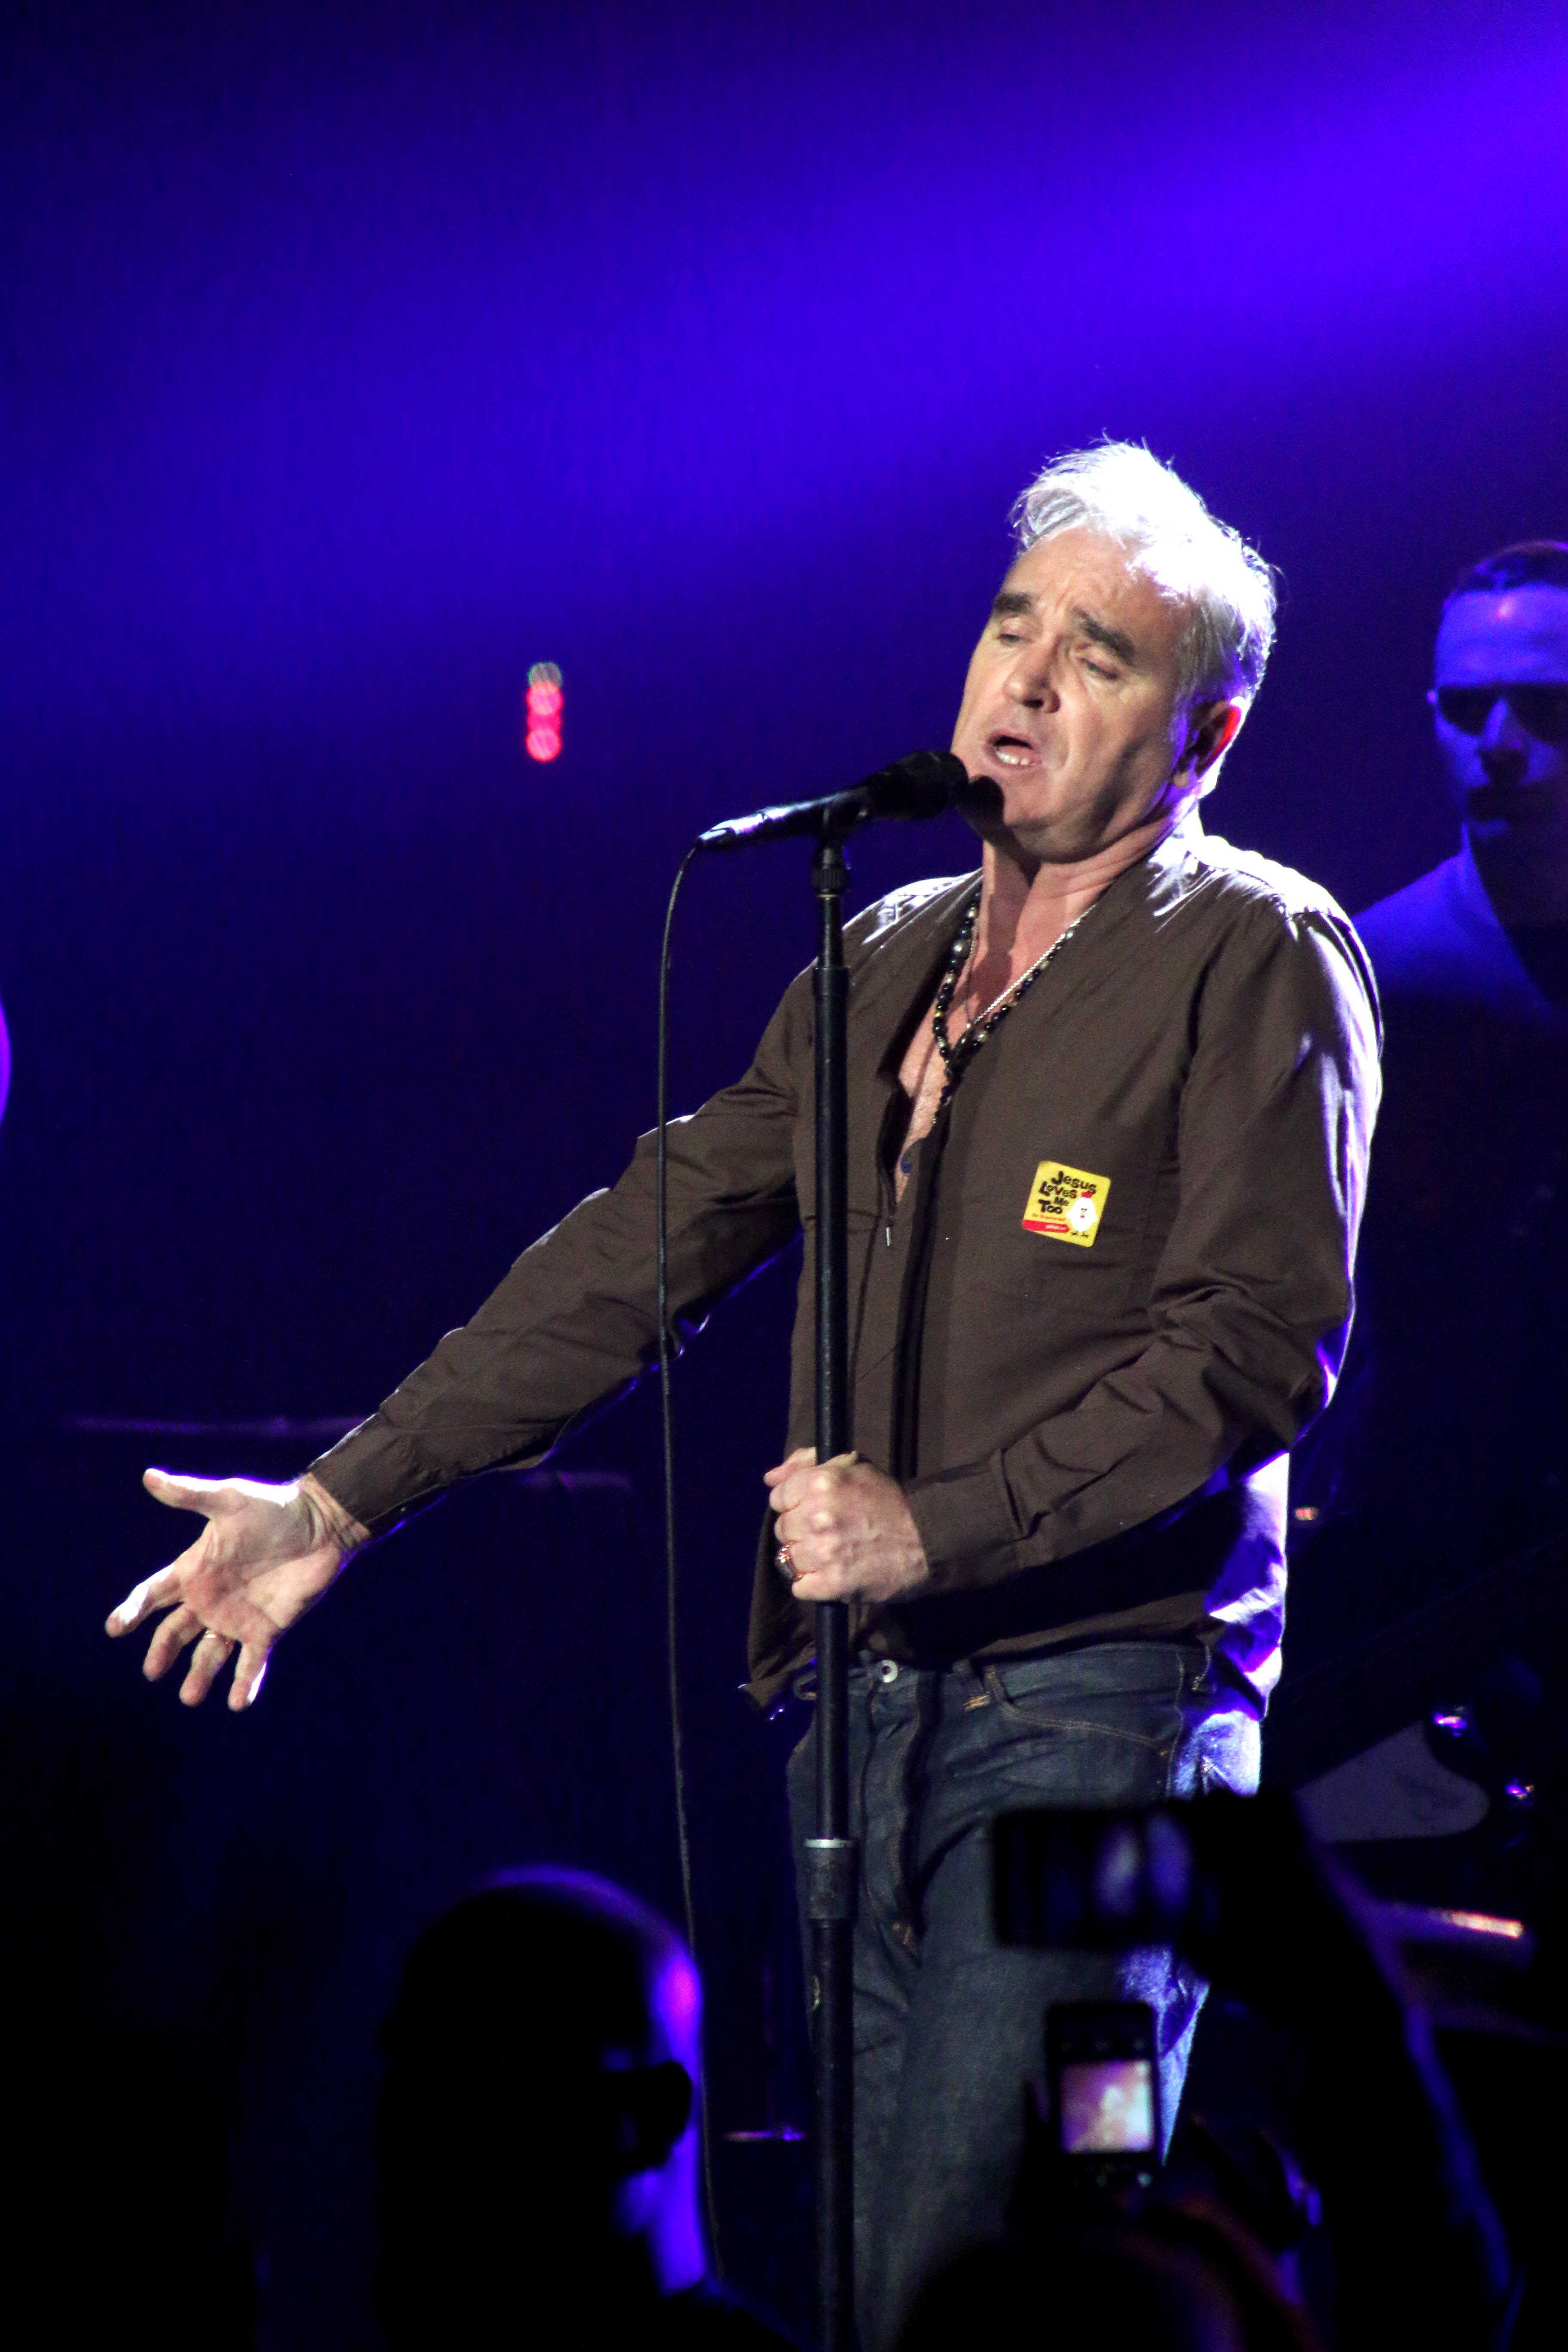 Morrissey performs for his fans at The Plaza Theater.